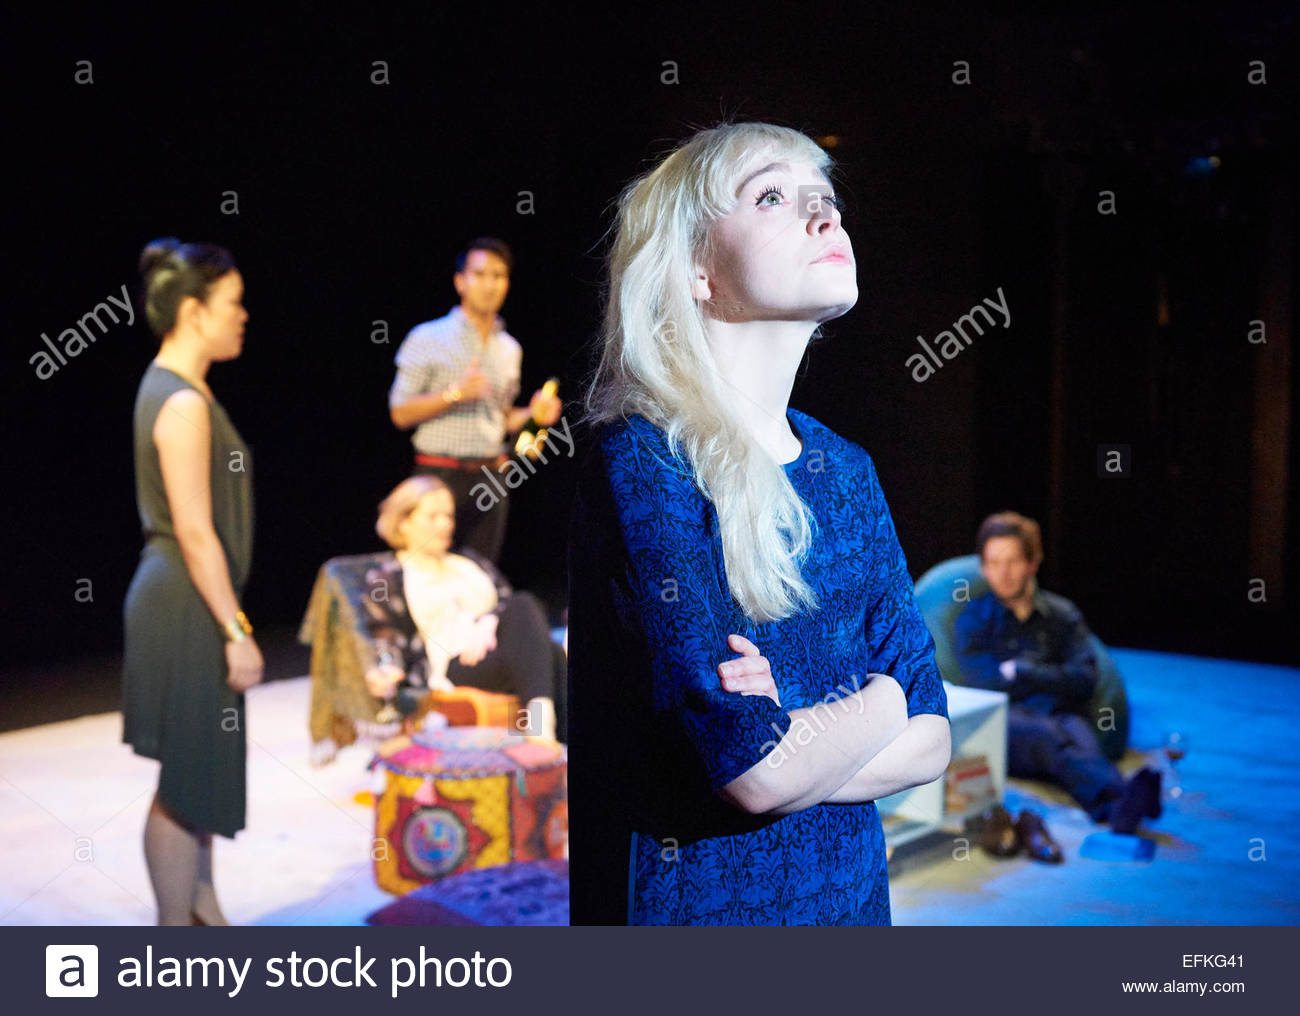 The Hard Problem. A new play by Tom Stoppard, directed by Nicholas Hytner. With Olivia Vinall as Hilary. Opens at - Stock Image